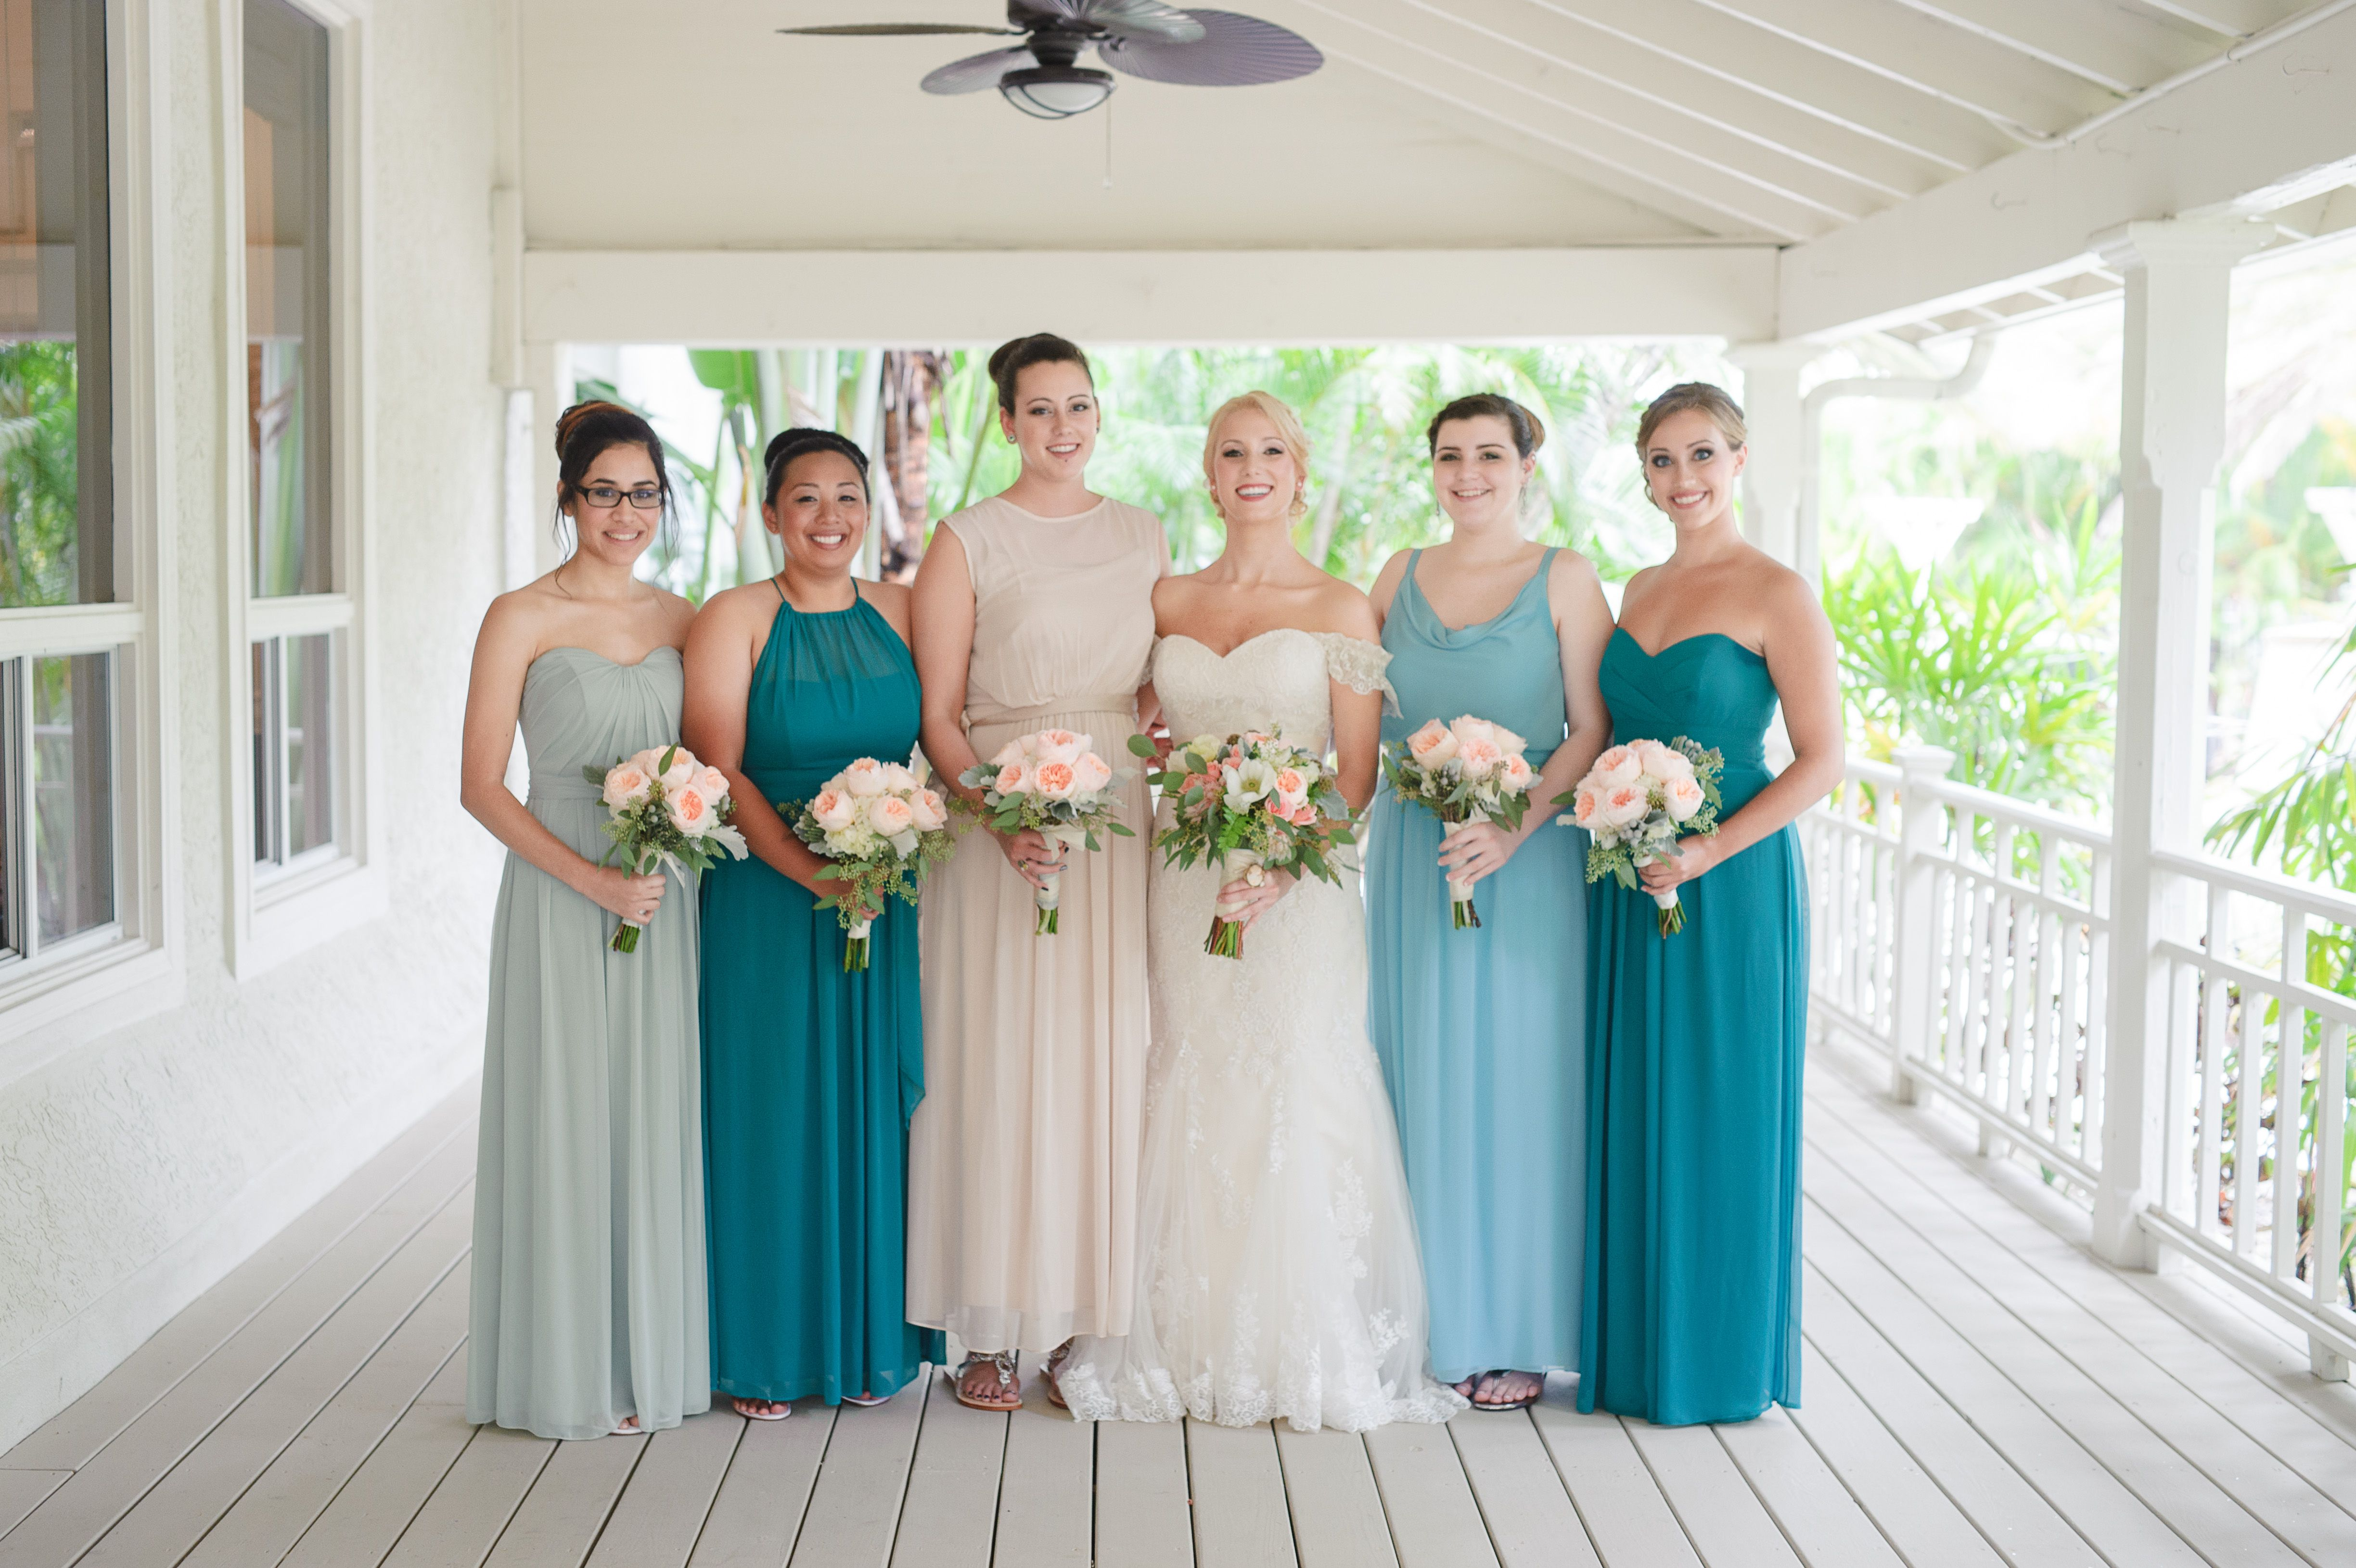 Bridesmaid Dresses In Champagne And Green Hues